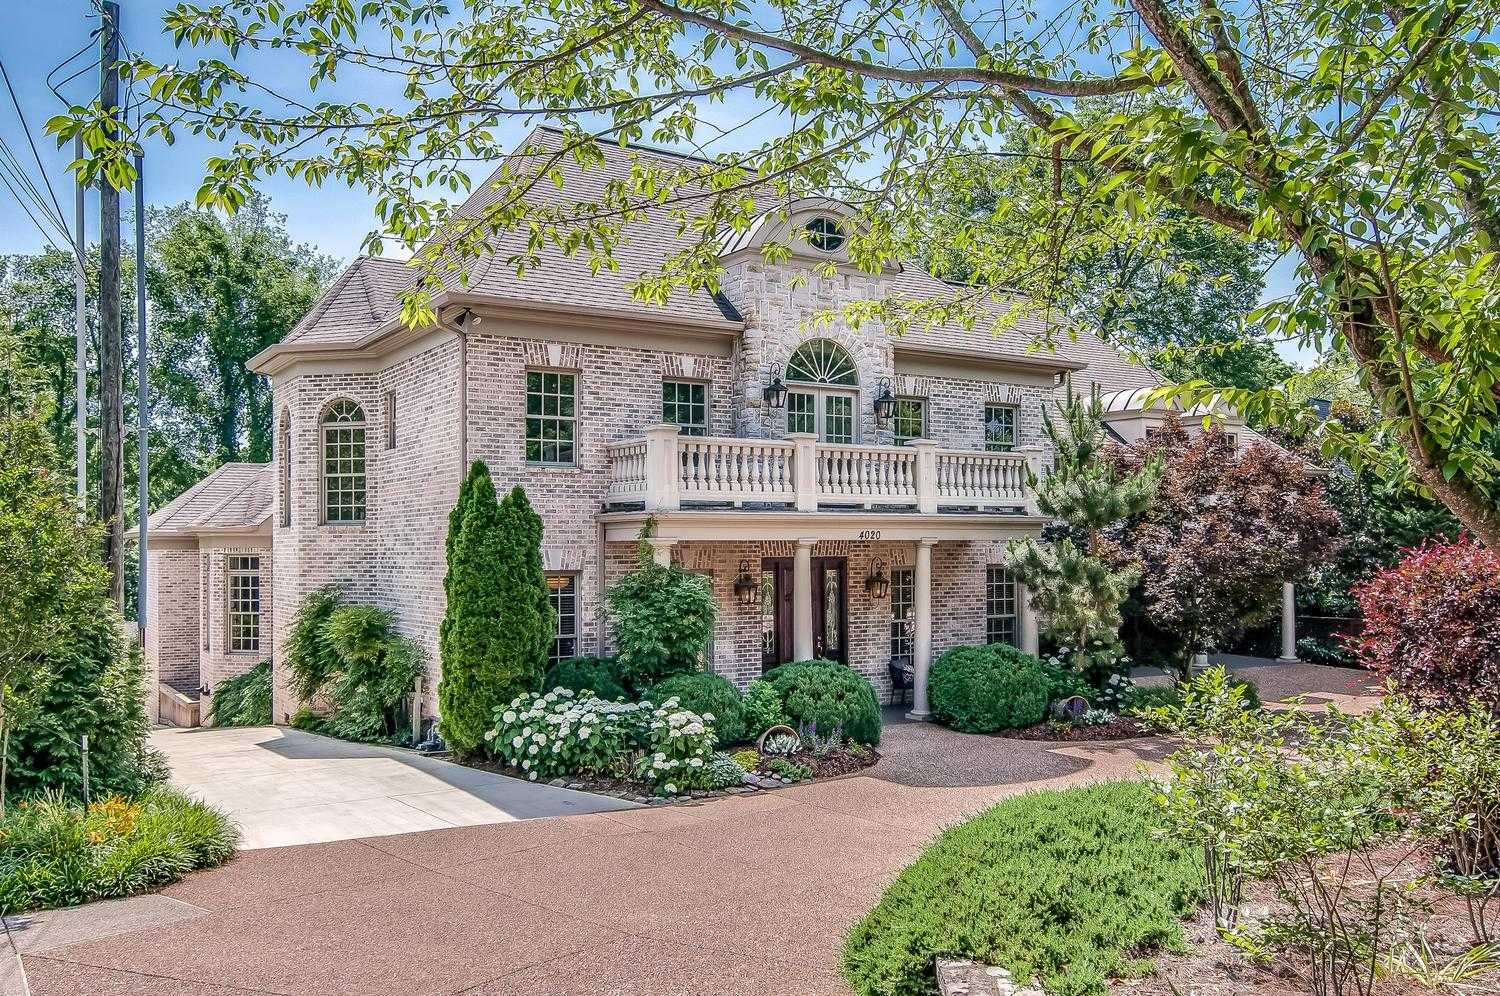 $1,750,000 - 4Br/5Ba -  for Sale in Green Hills, Nashville